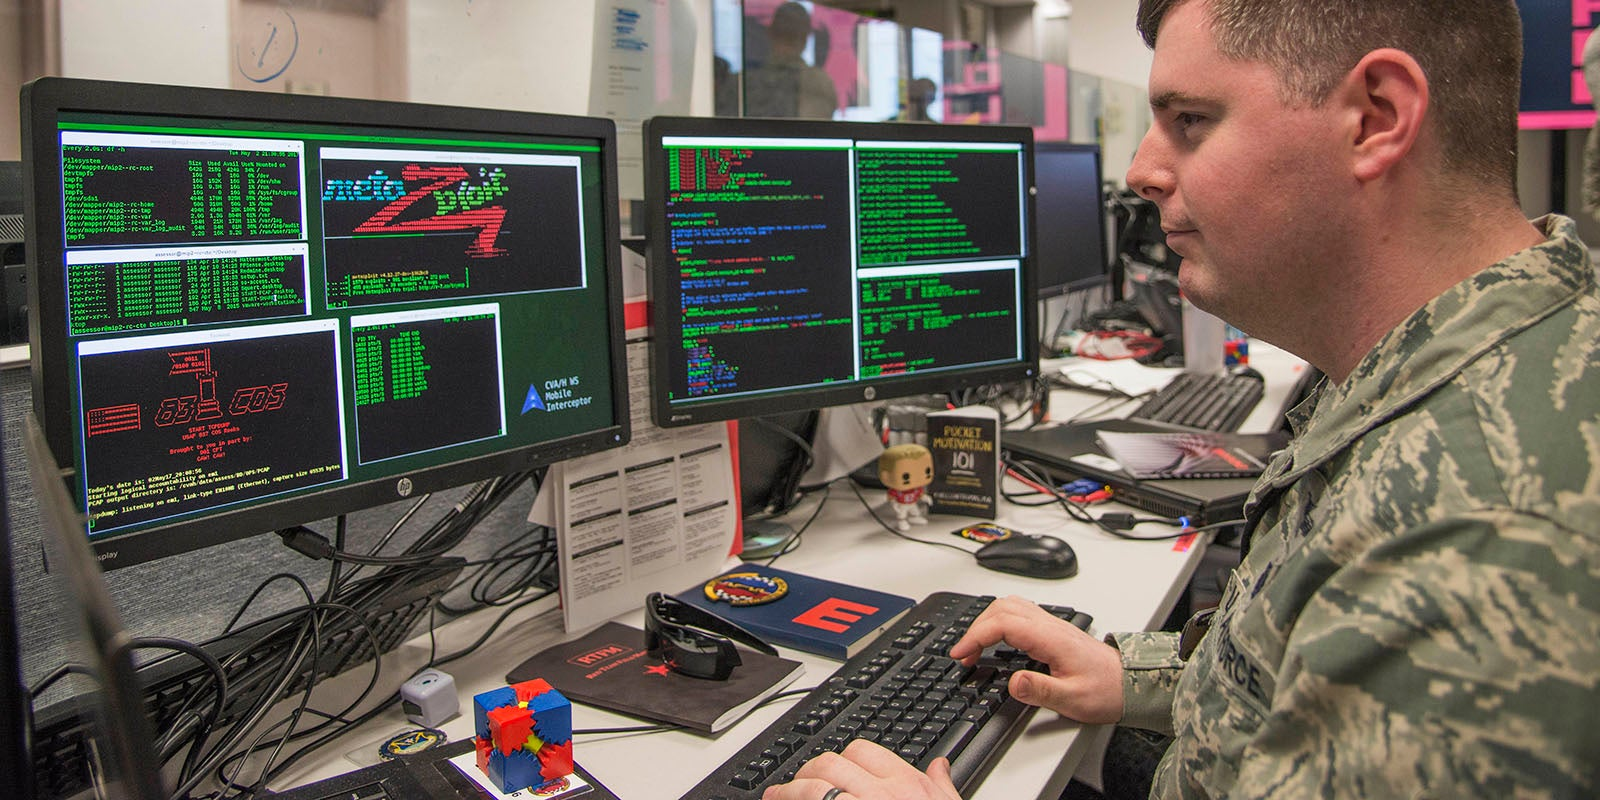 The military keeps growing their cybersecurity program. Here's how you can get involved